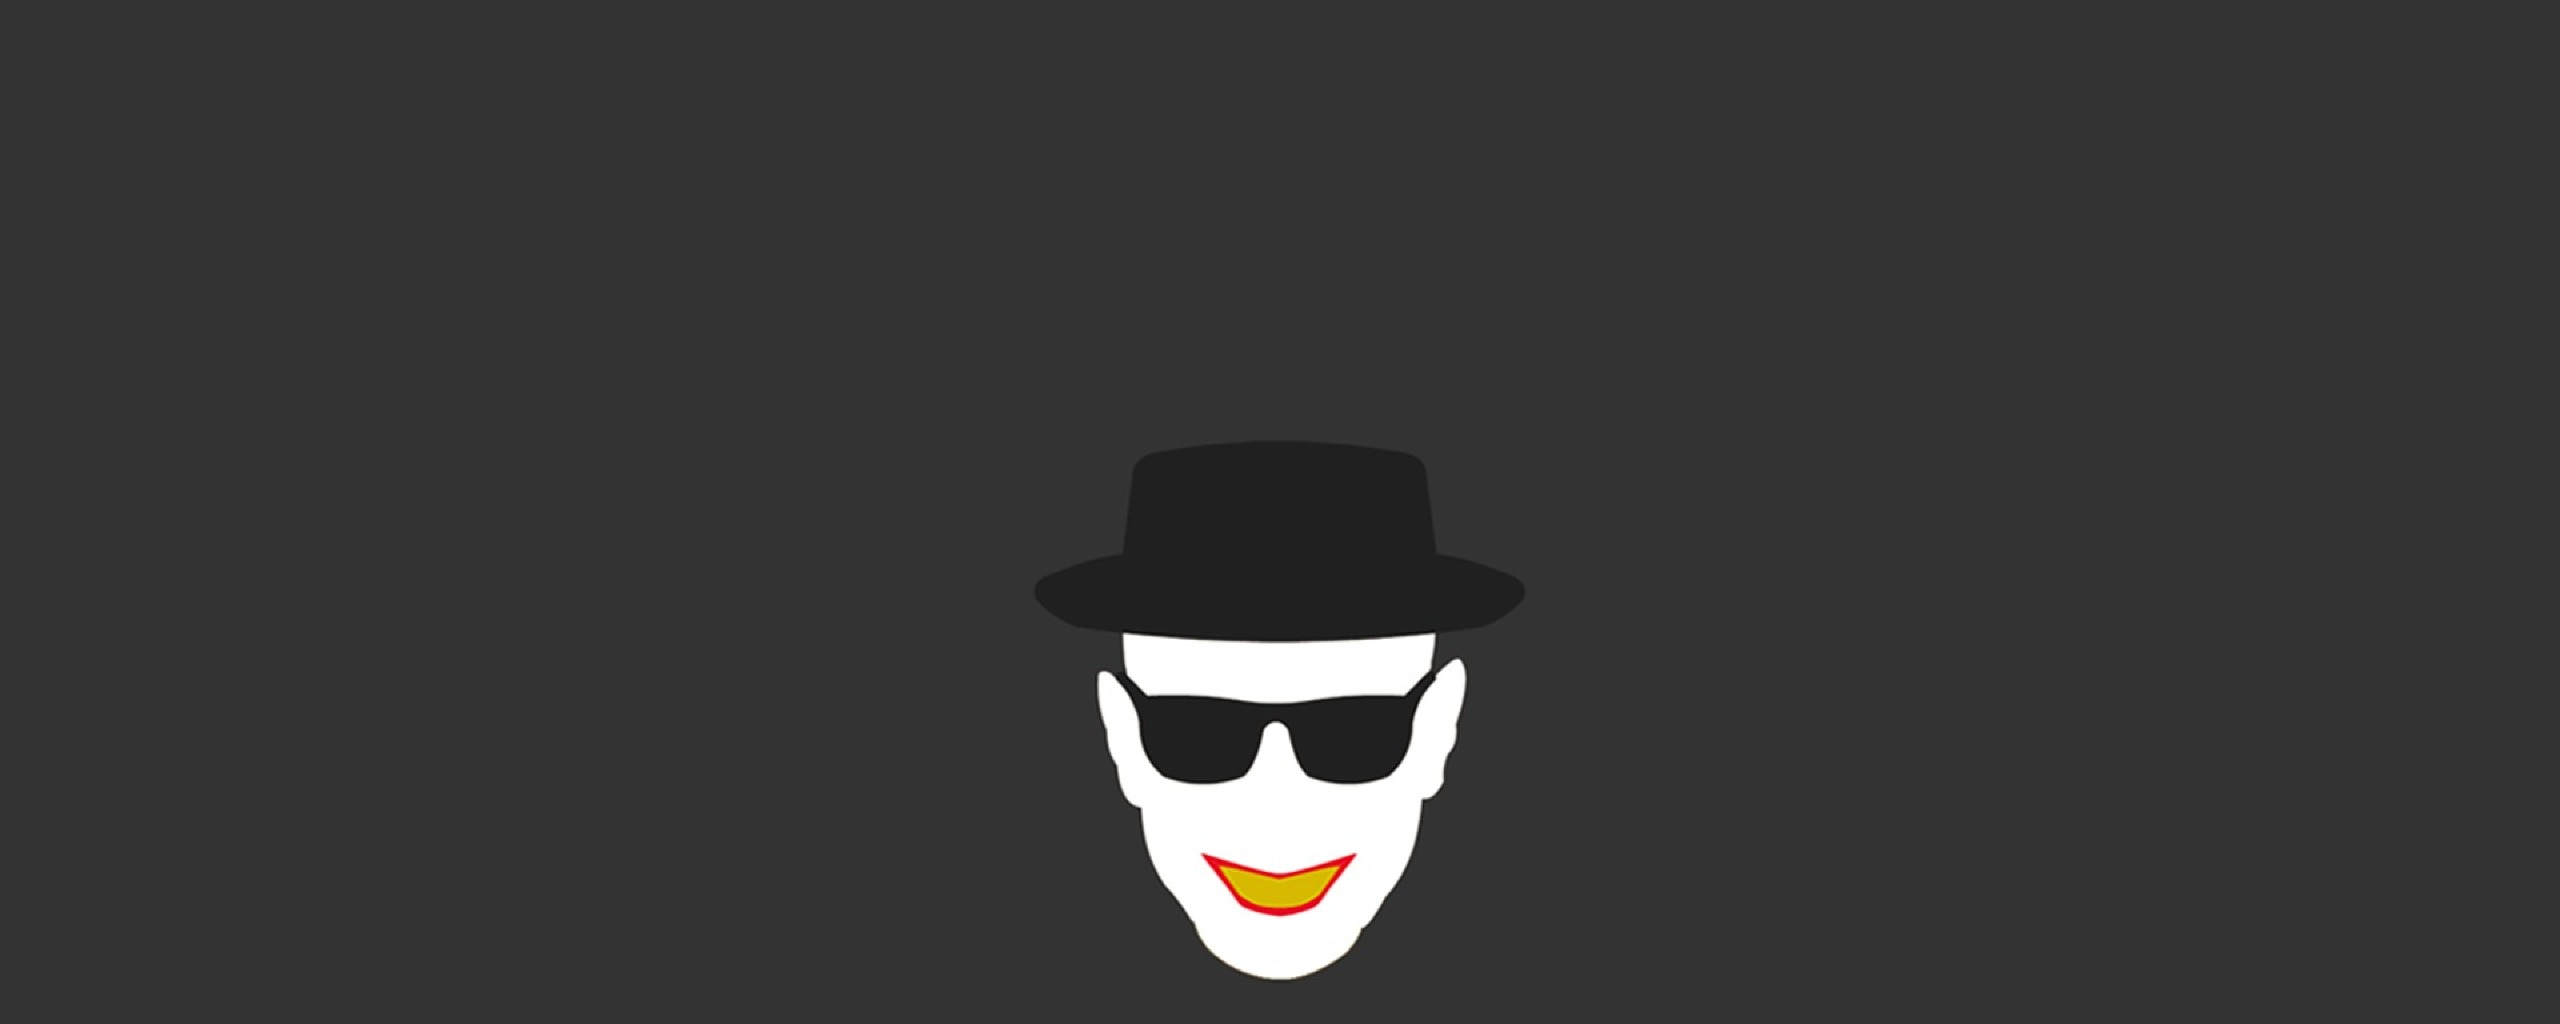 Breaking Bad Minimalist Art, Full HD Wallpaper